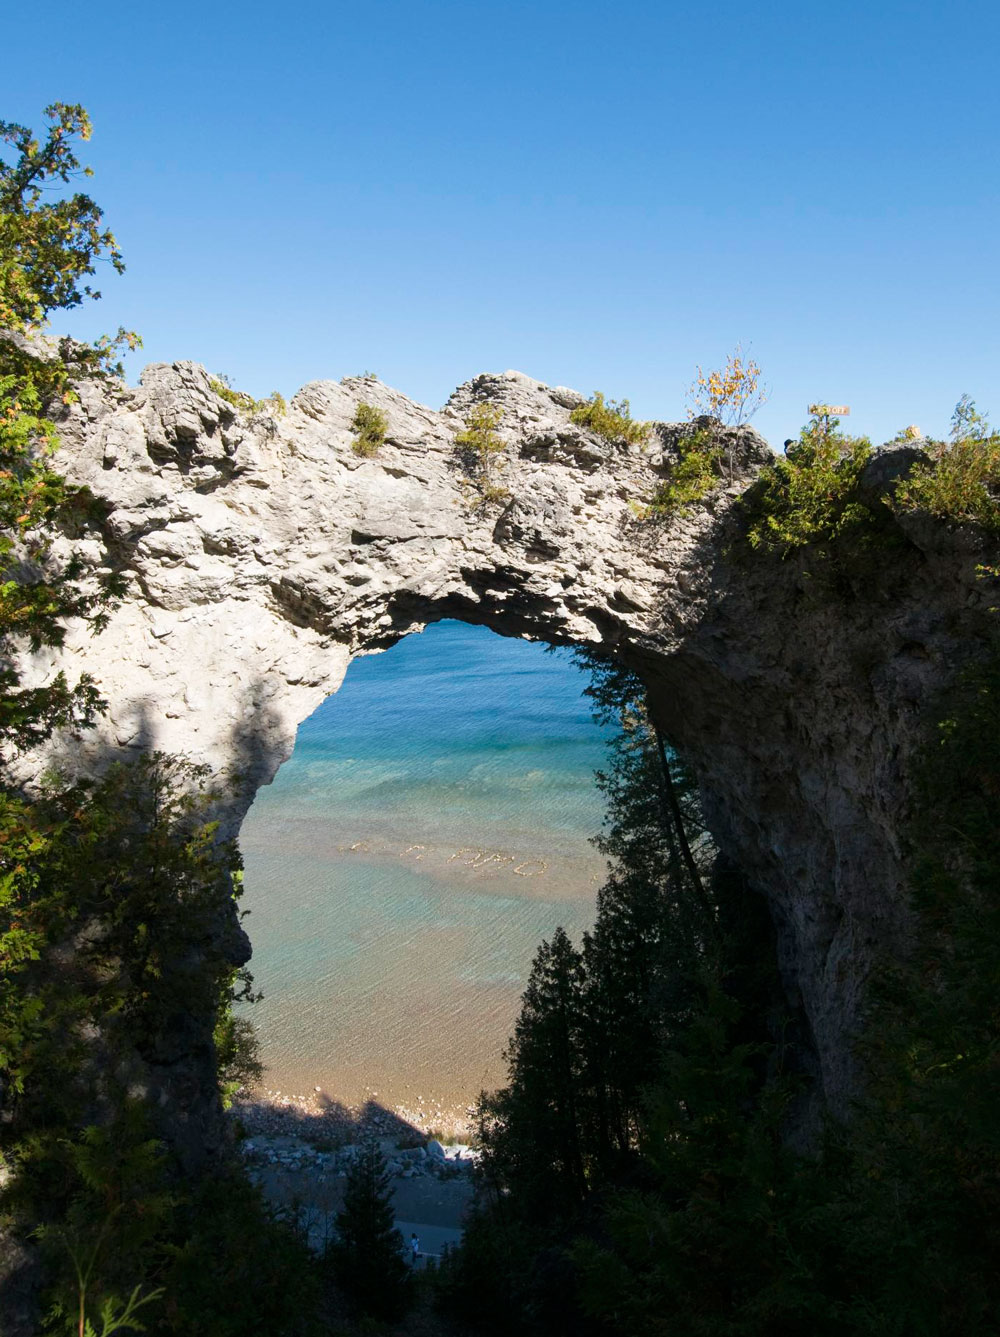 More cool island attitude: Mackinac Island, Michigan